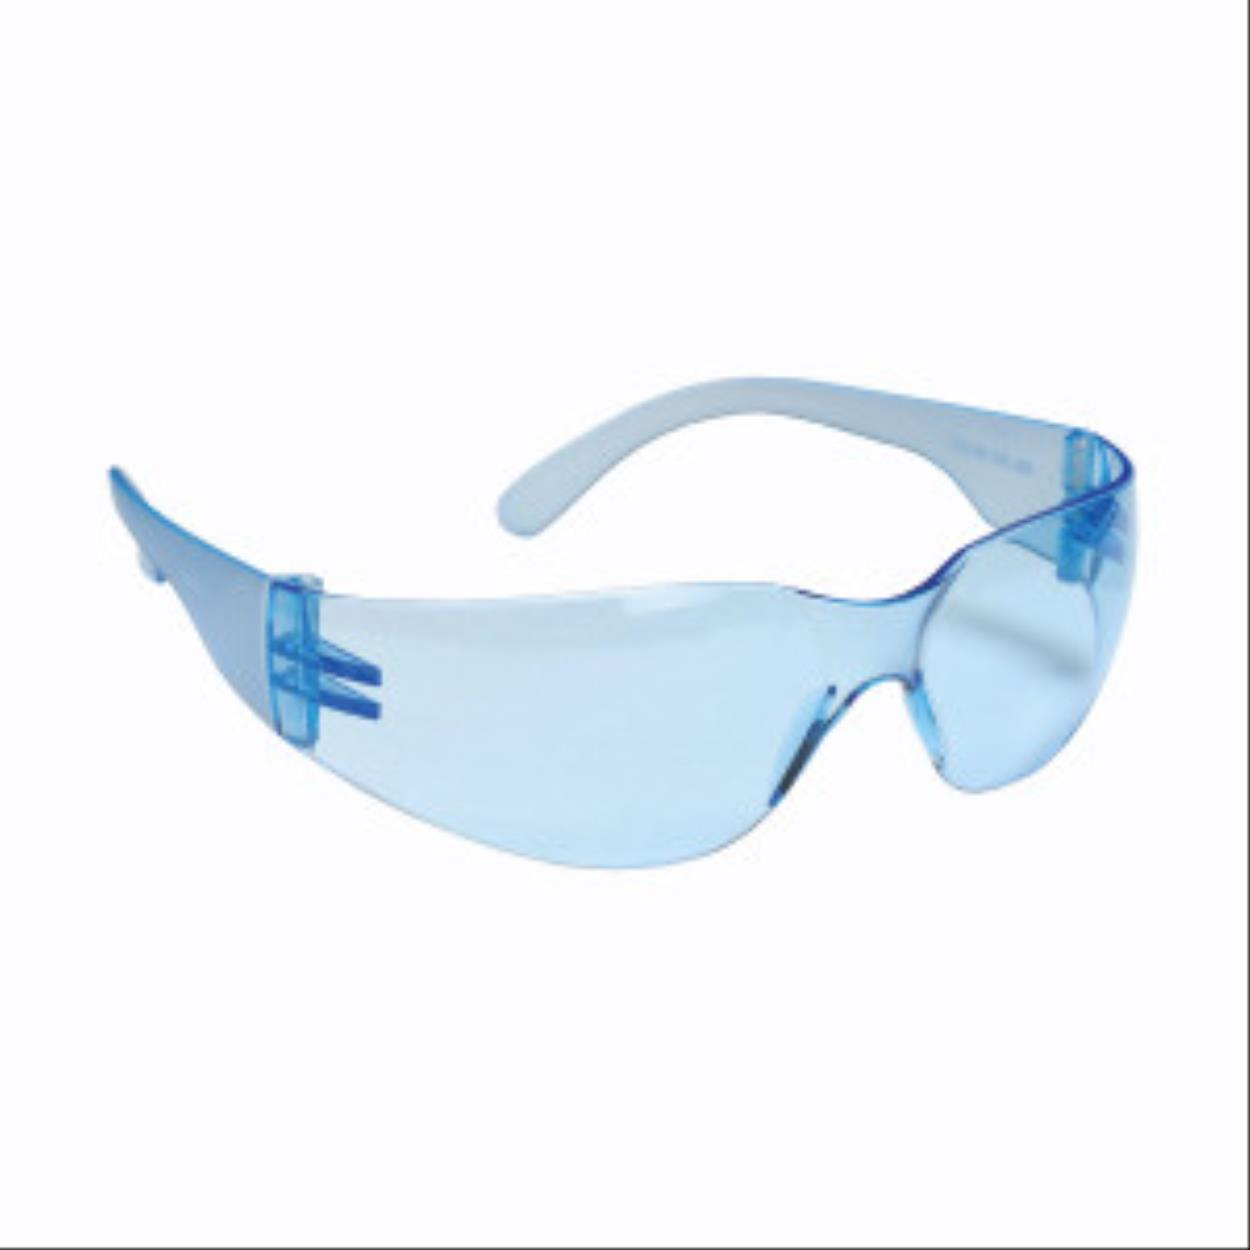 Safety Products Inc - Bulldog Safety Glasses - E1EHF10S ...